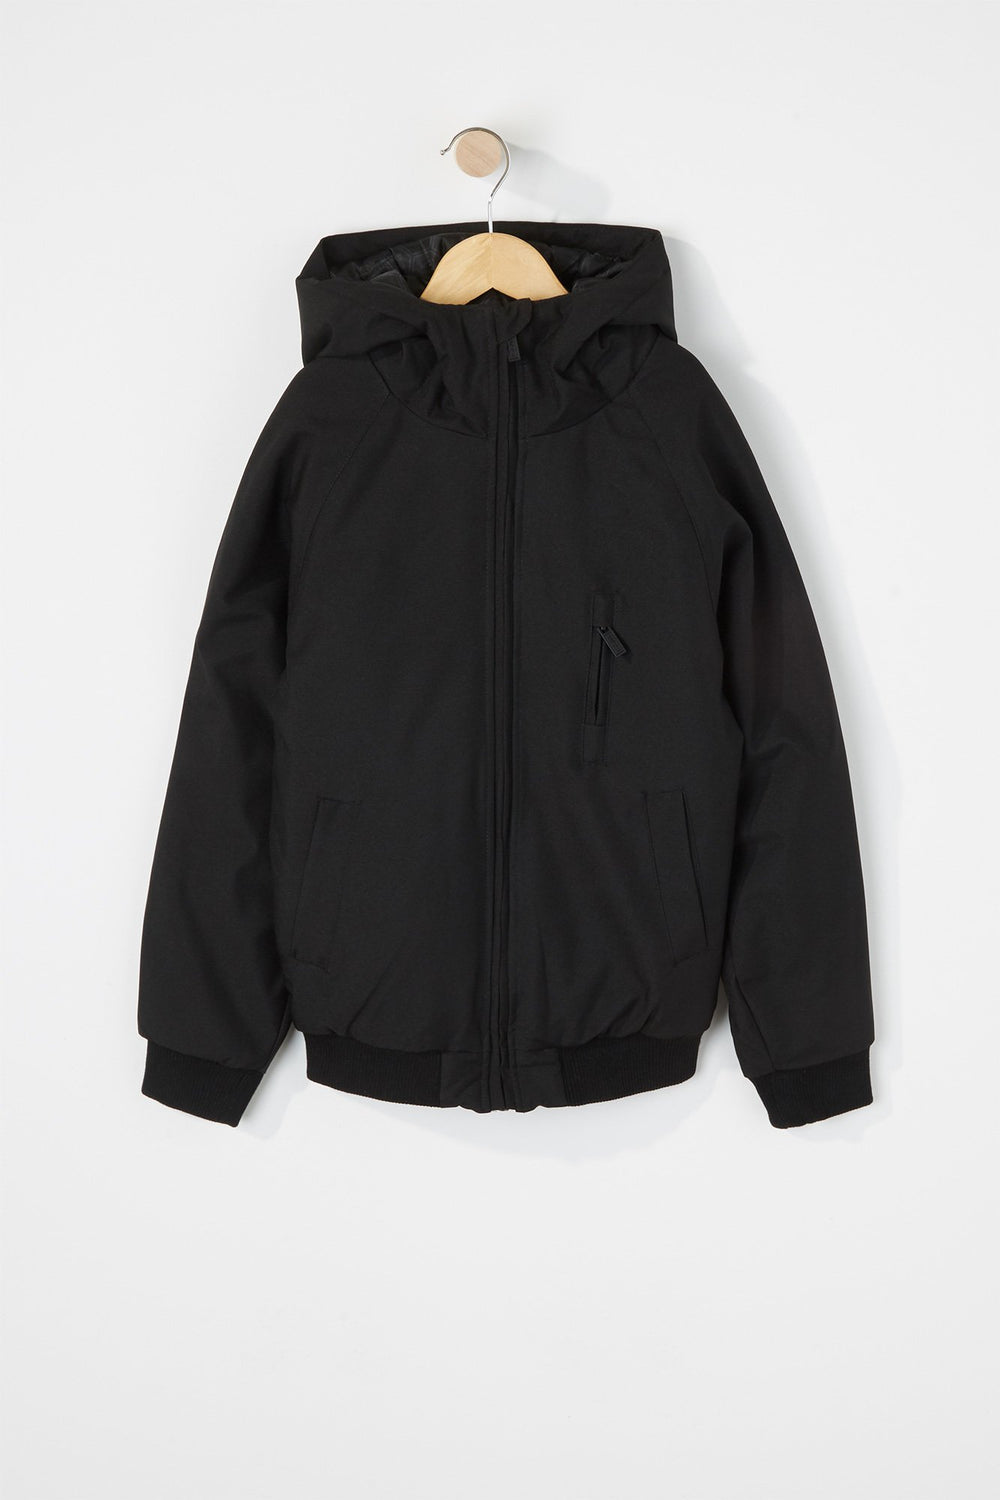 West49 Boys Medium Weight Hooded Jacket Black